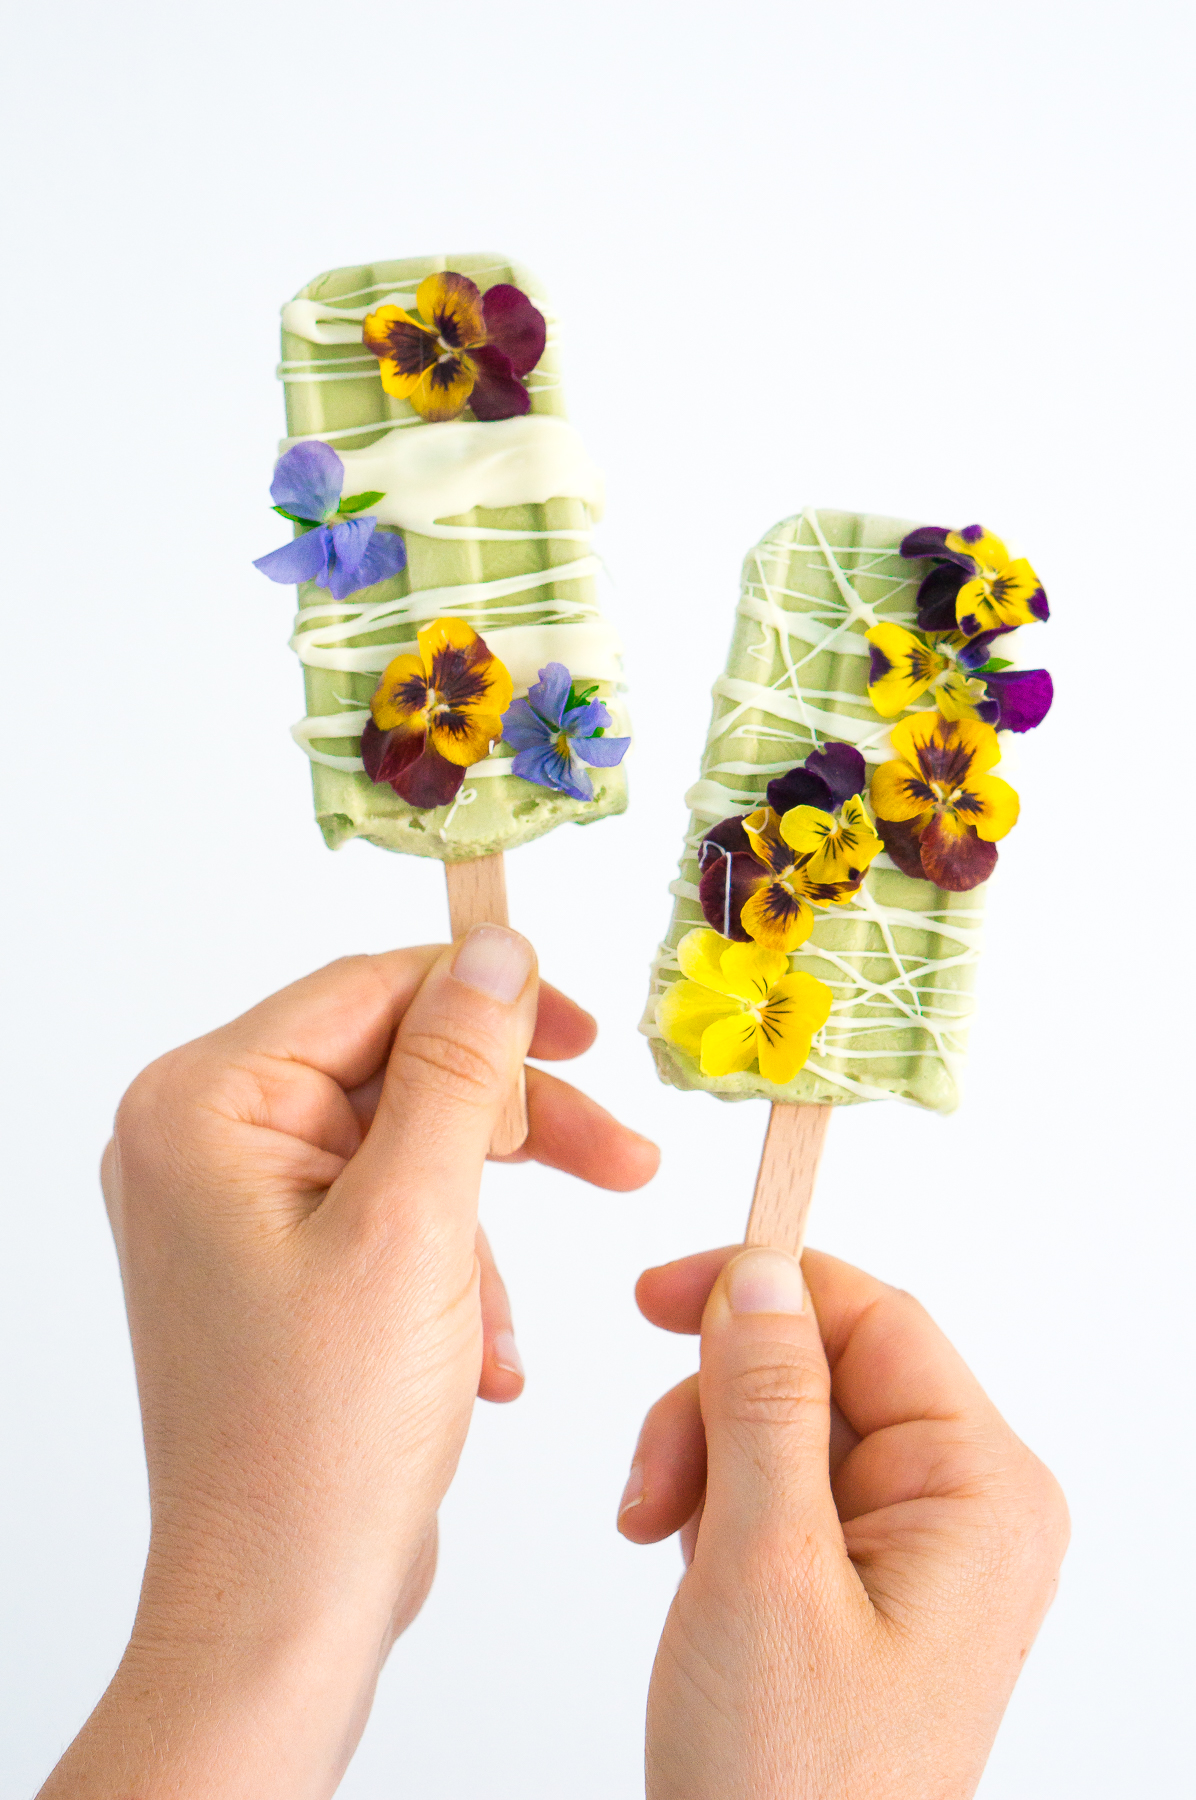 673652480ad White Chocolate Basil Popsicles with Edible Flowers (Vegan